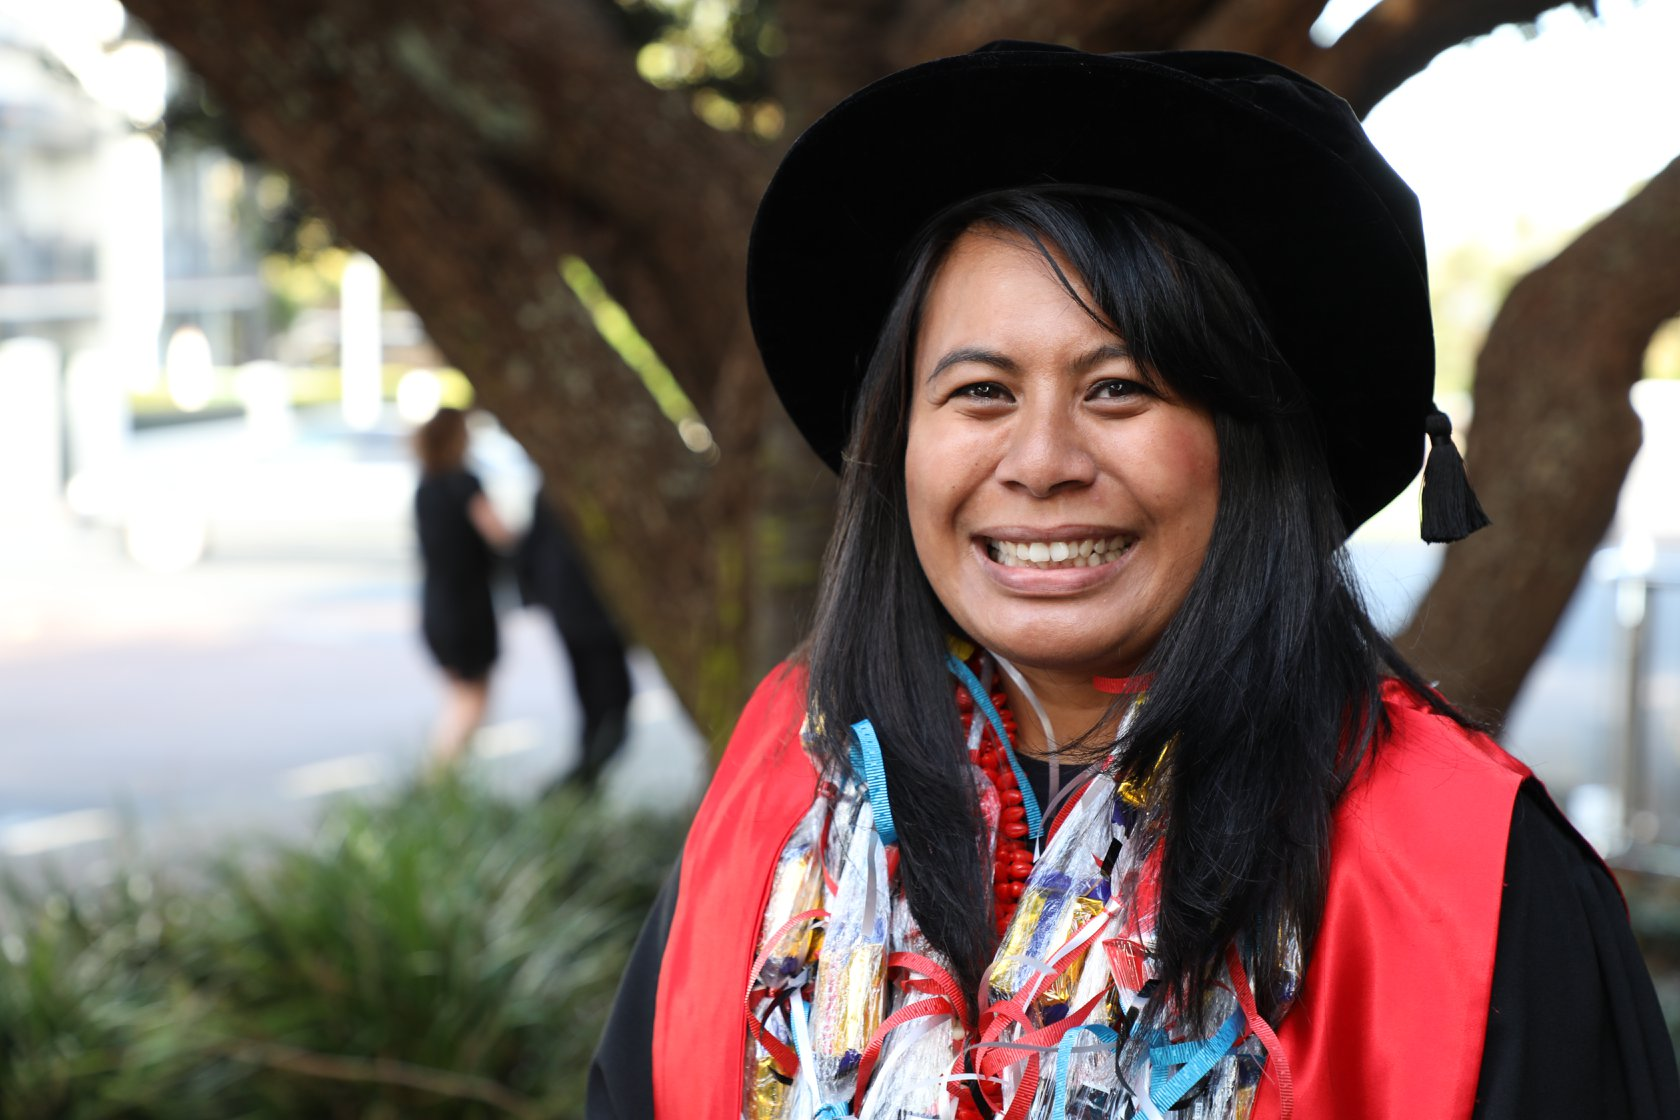 DR NICOLA FA'AVALE   Dr. Nicola Fa'avale (née Tava'e) is of Samoan, Niuean and Tongan heritage. She has a Bachelors of Health Science, a Postgraduate degree in Public Health, Masters in Public Health, and a PhD in Public Health. Nicola's passion for promoting Pasifika health drives her work. She is a researcher at the University of Queensland focusing on Pasifika health in South-East Queensland and is Lead Researcher for the MANA Research Centre